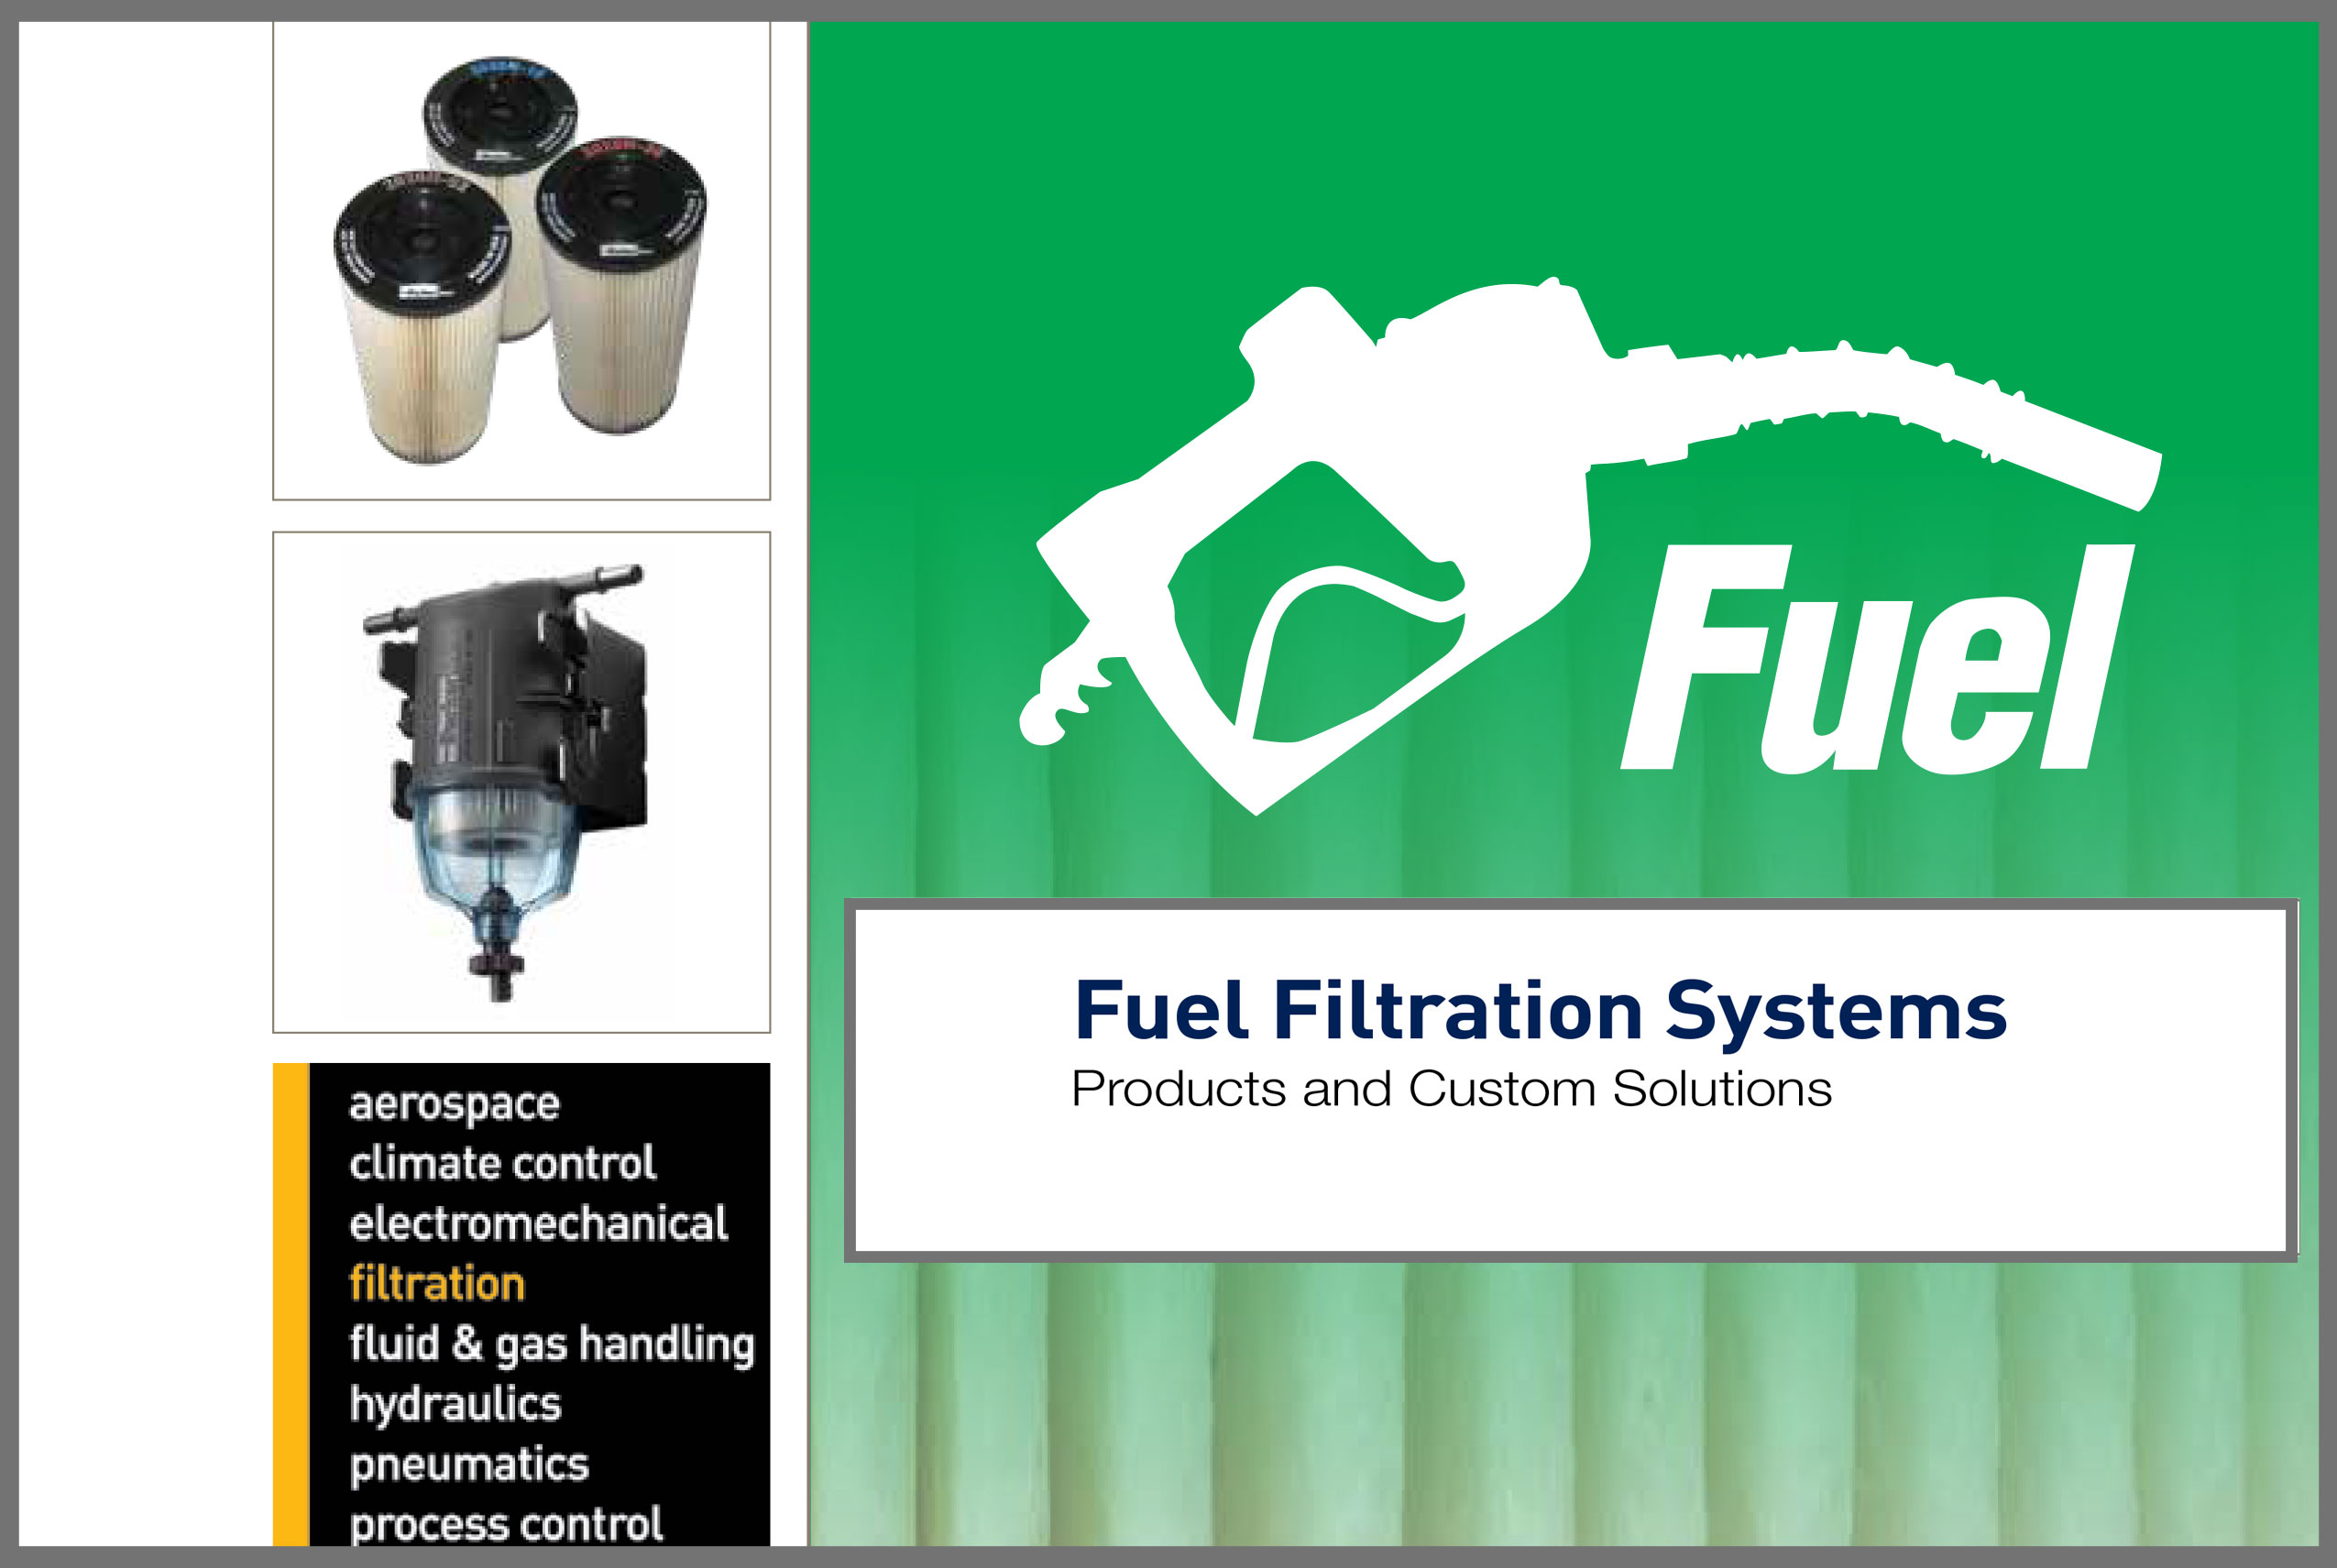 https://www.thomasgroupltd.co.uk/wp-content/uploads/2019/01/Parker_Fuel_Filtration-image.jpg